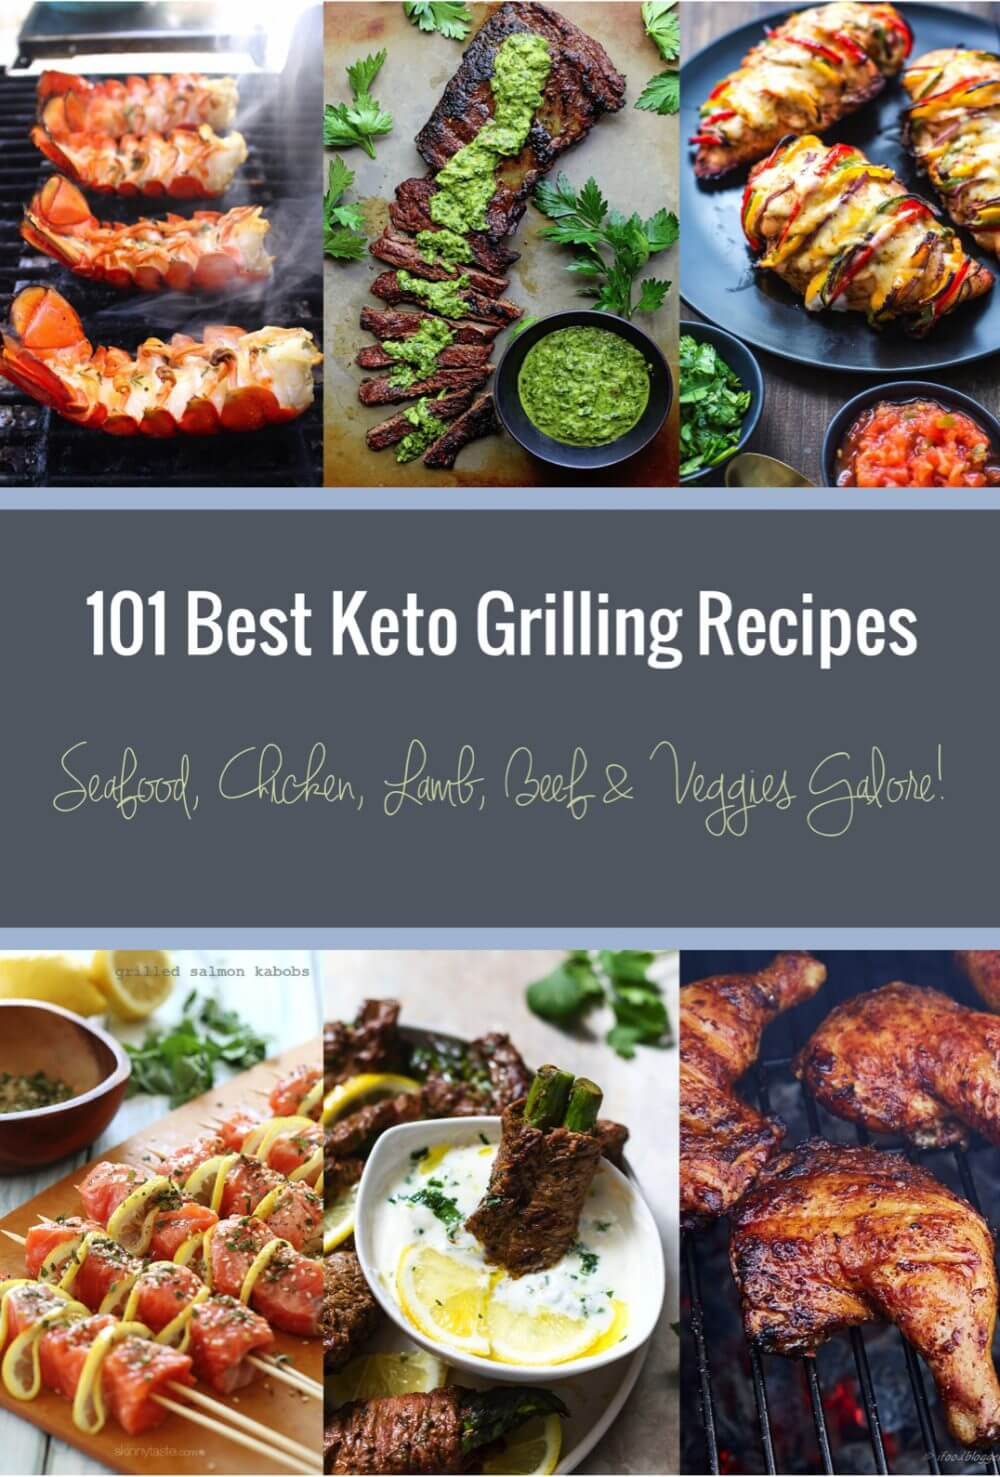 101 Best Keto Grilling Recipes - low carb grilling recipes to keep your kitchen cool!